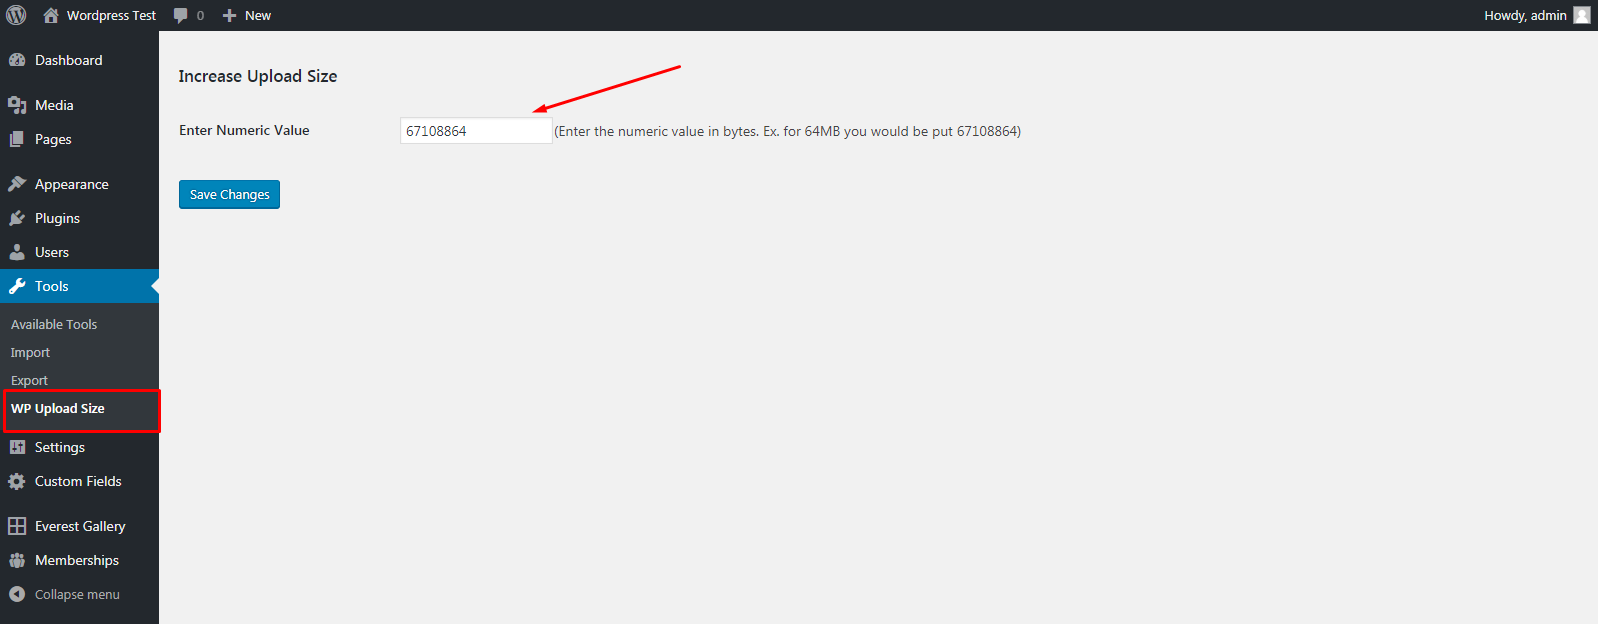 Go to admin area and select WP Upload Size link under the Tools Tab .